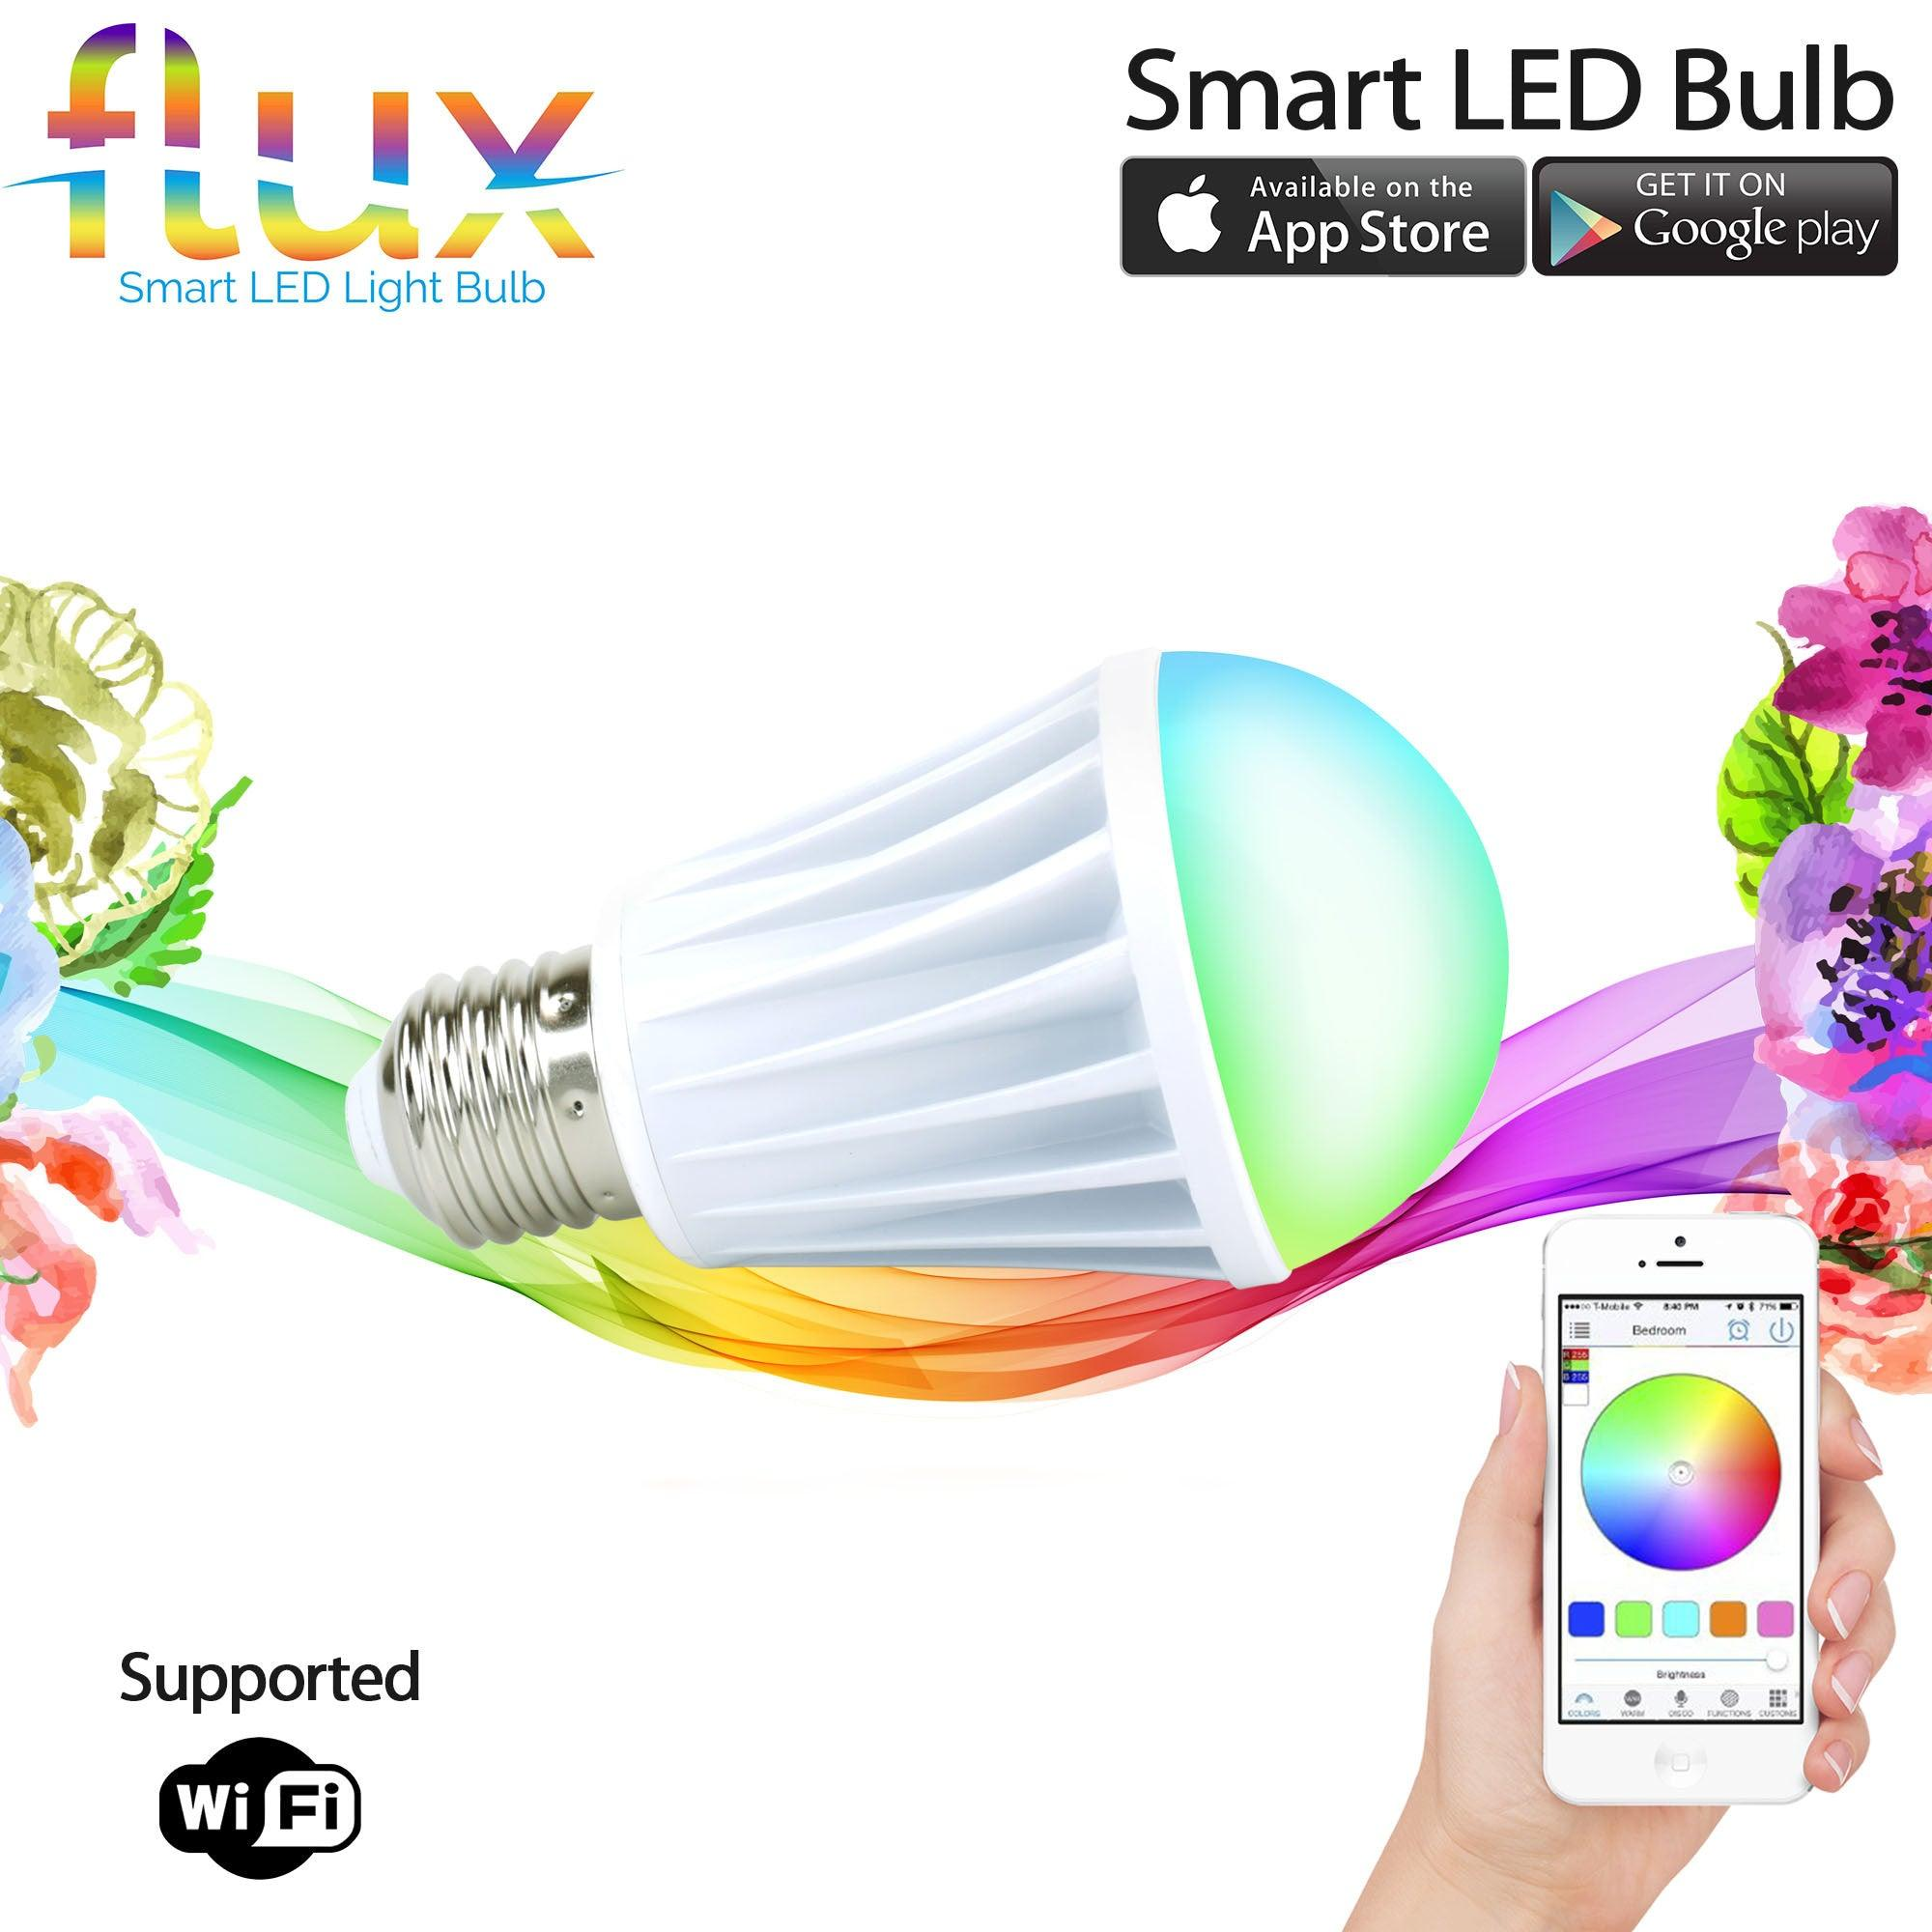 Color changing lightbulbs (4 styles) - Photography and Web Design - Los Angeles, US based Shopify Experts Revo Designs